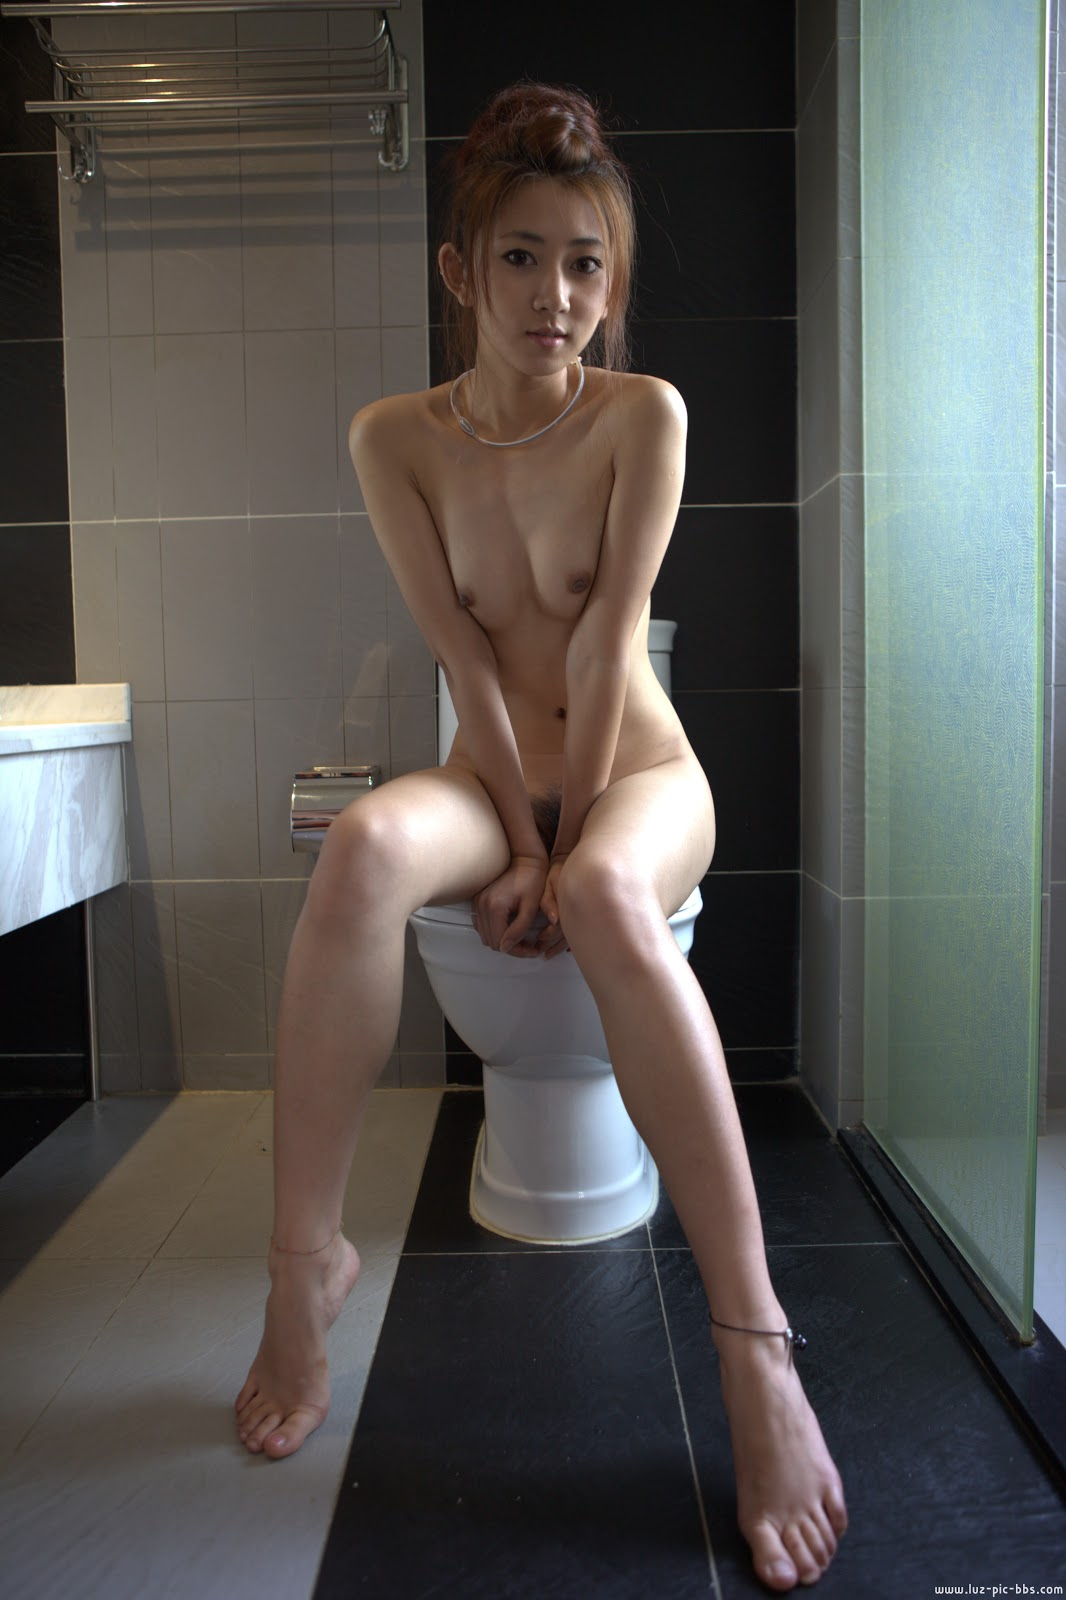 Chinese Nude_Art_Photos_-_233_-_Xiaowan_XiaoJiao.rar